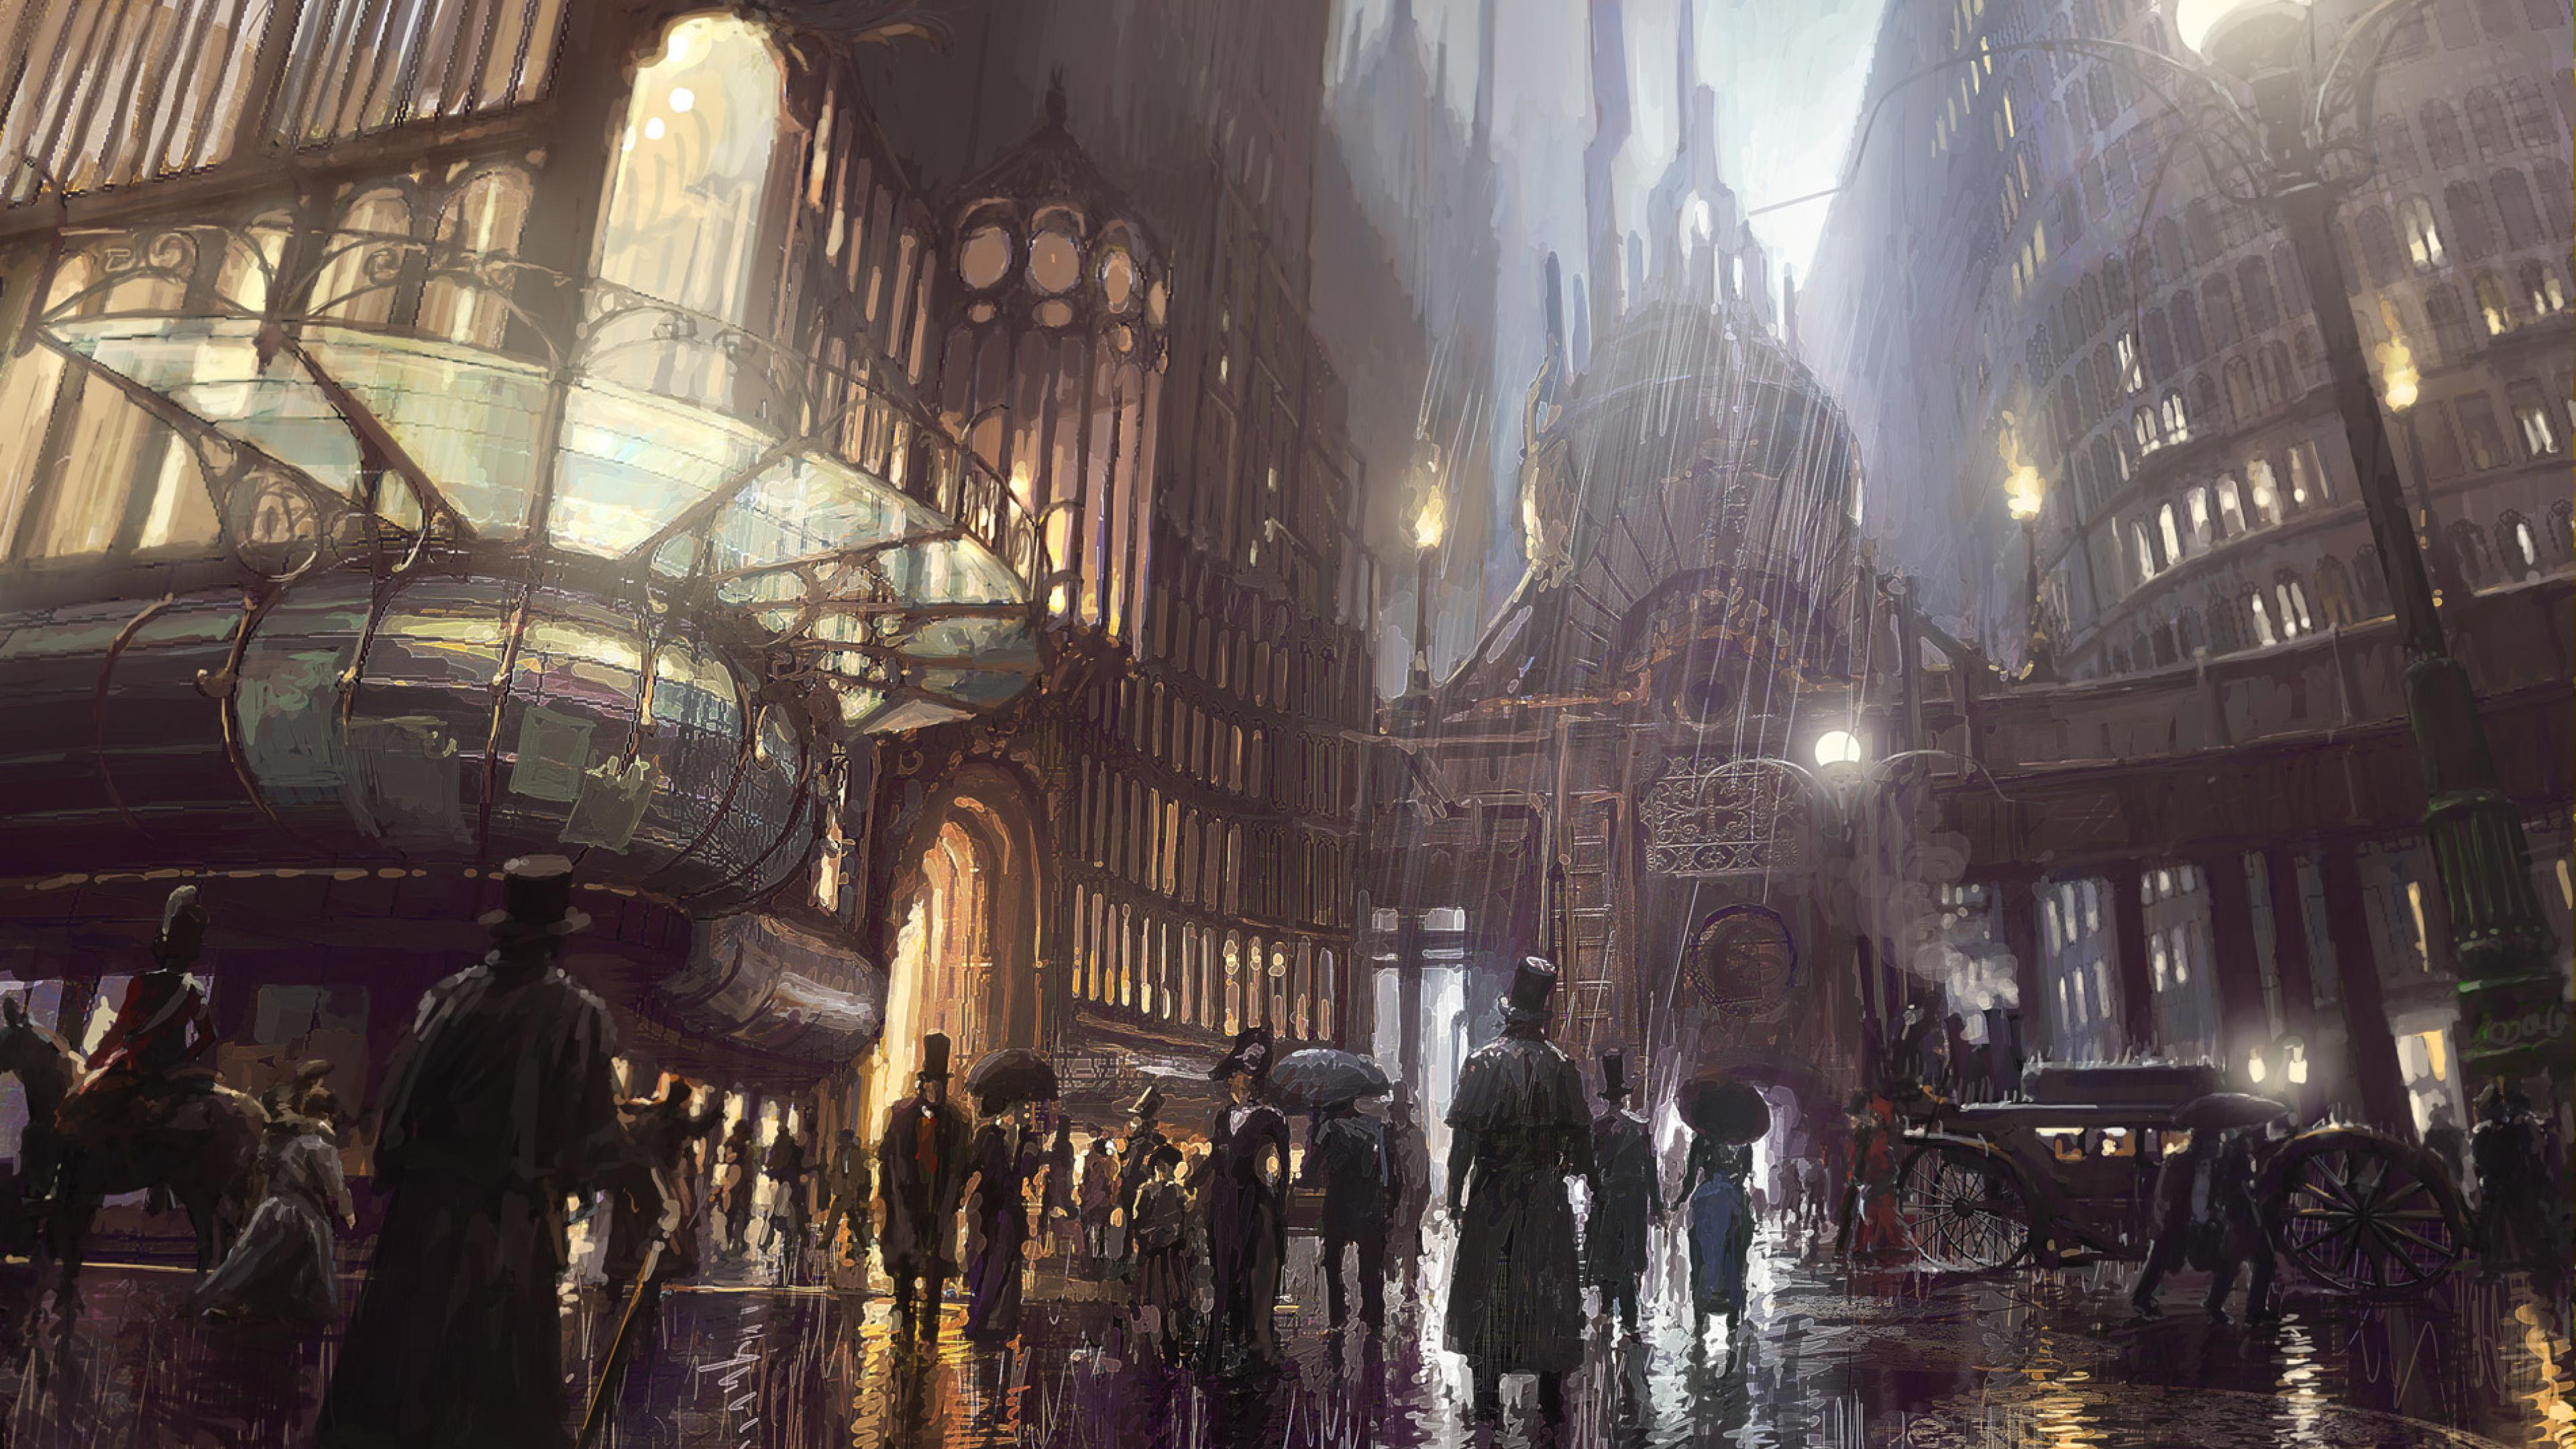 City art steampunk ultra 3840x2160 hd wallpaper 418538